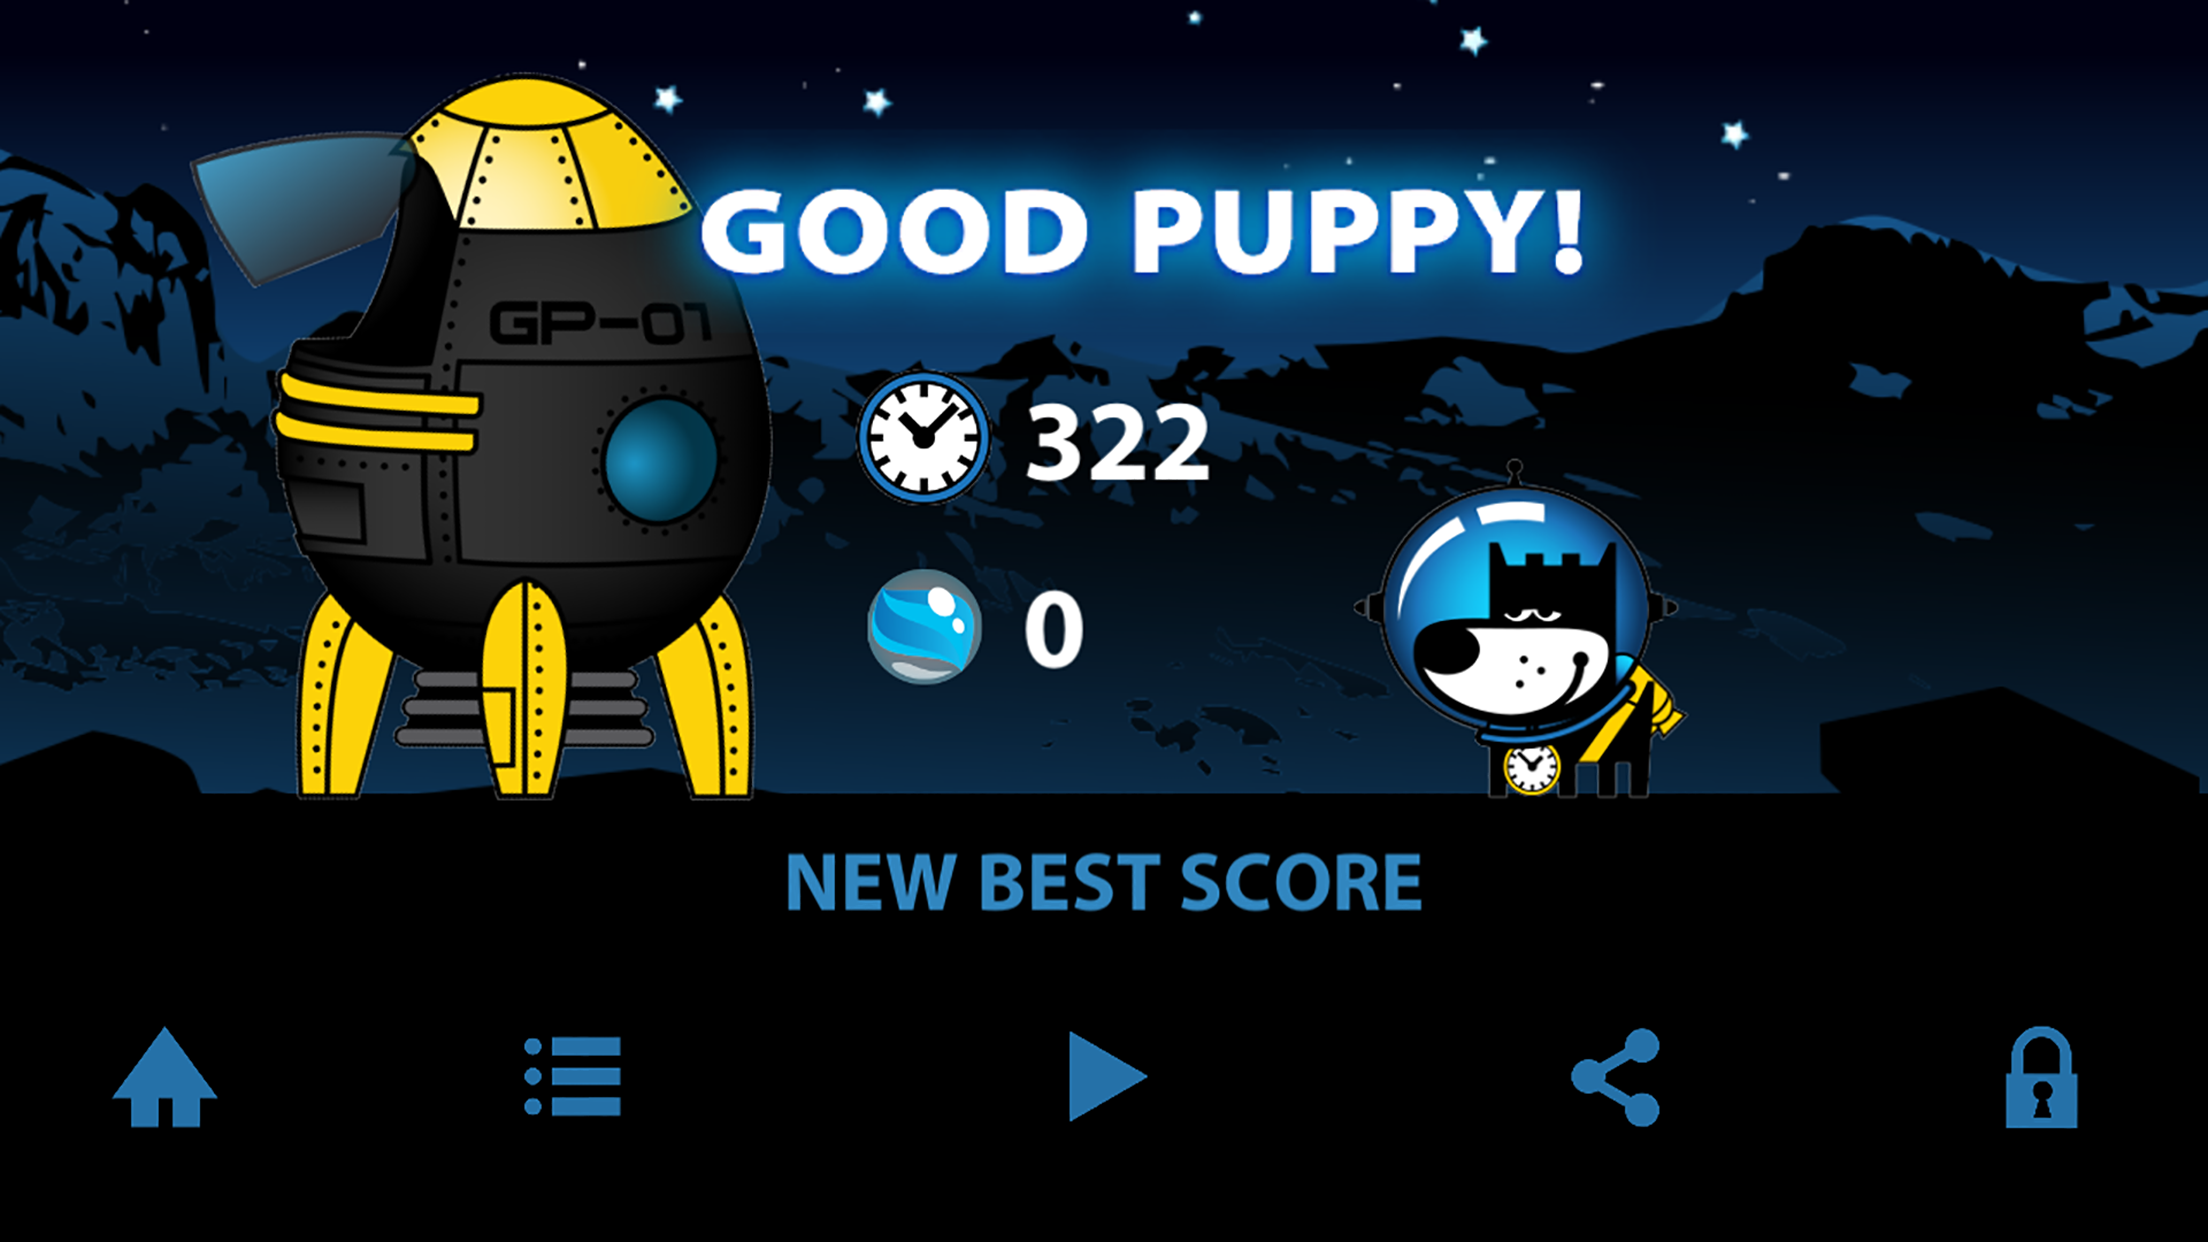 GOOD PUPPY SPACE WALK - Space Puppy - Infinite Runner - Fast Simple 80s Retro Arcade Game